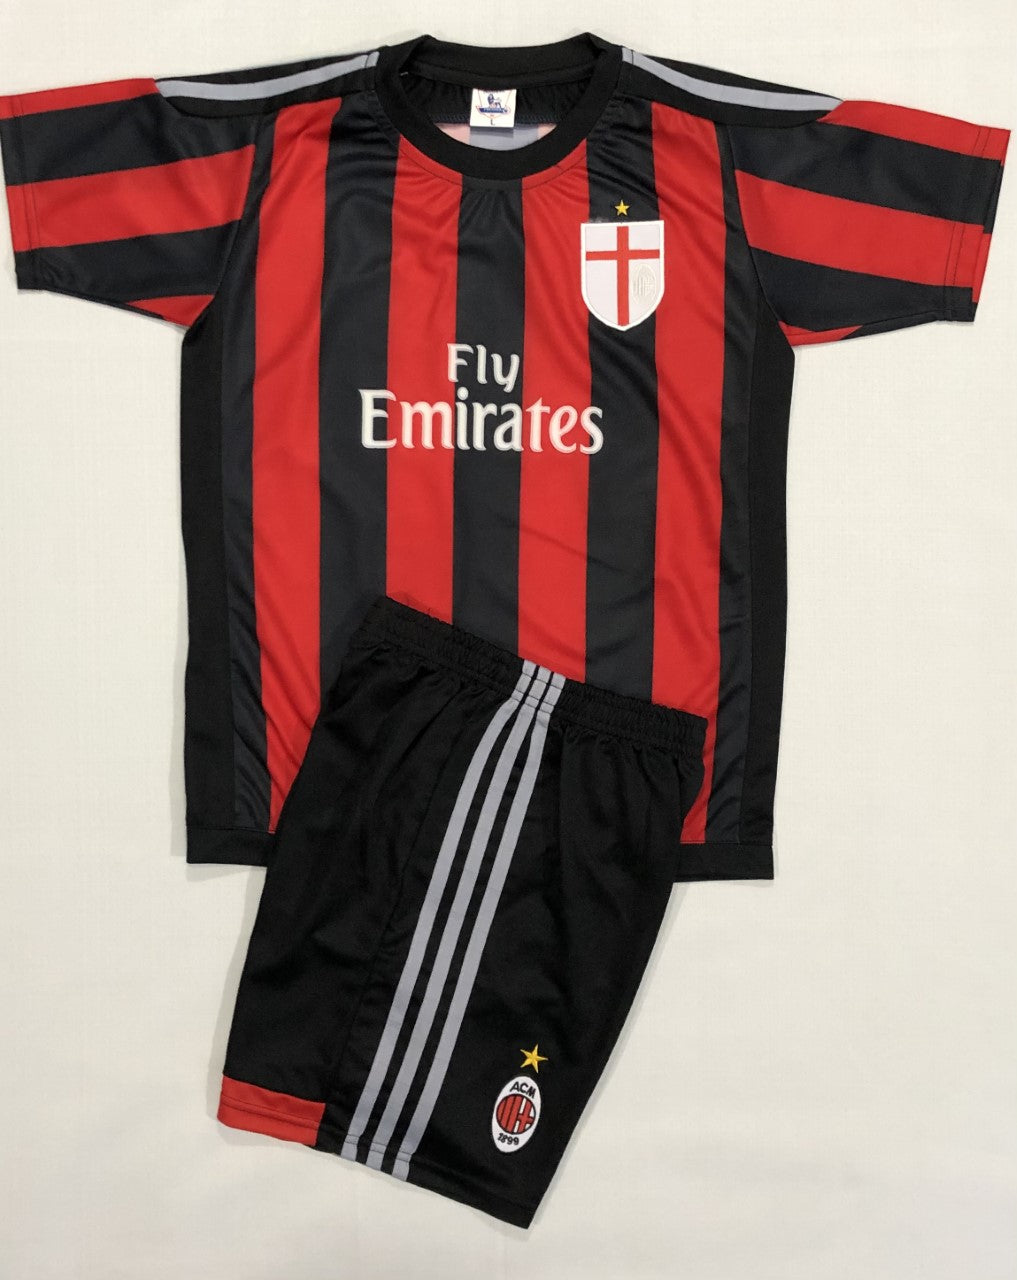 AC MILAN HOME 2015/16 KIDS 2-PIECE SOCCER SET (Version EP)